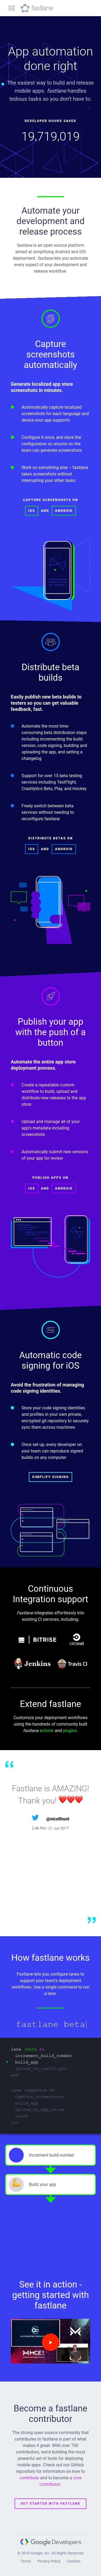 Example of Design for Computers & Electronics, Programming, Mobile Landing Page by fastlane.tools   Mobile Landing Page Design